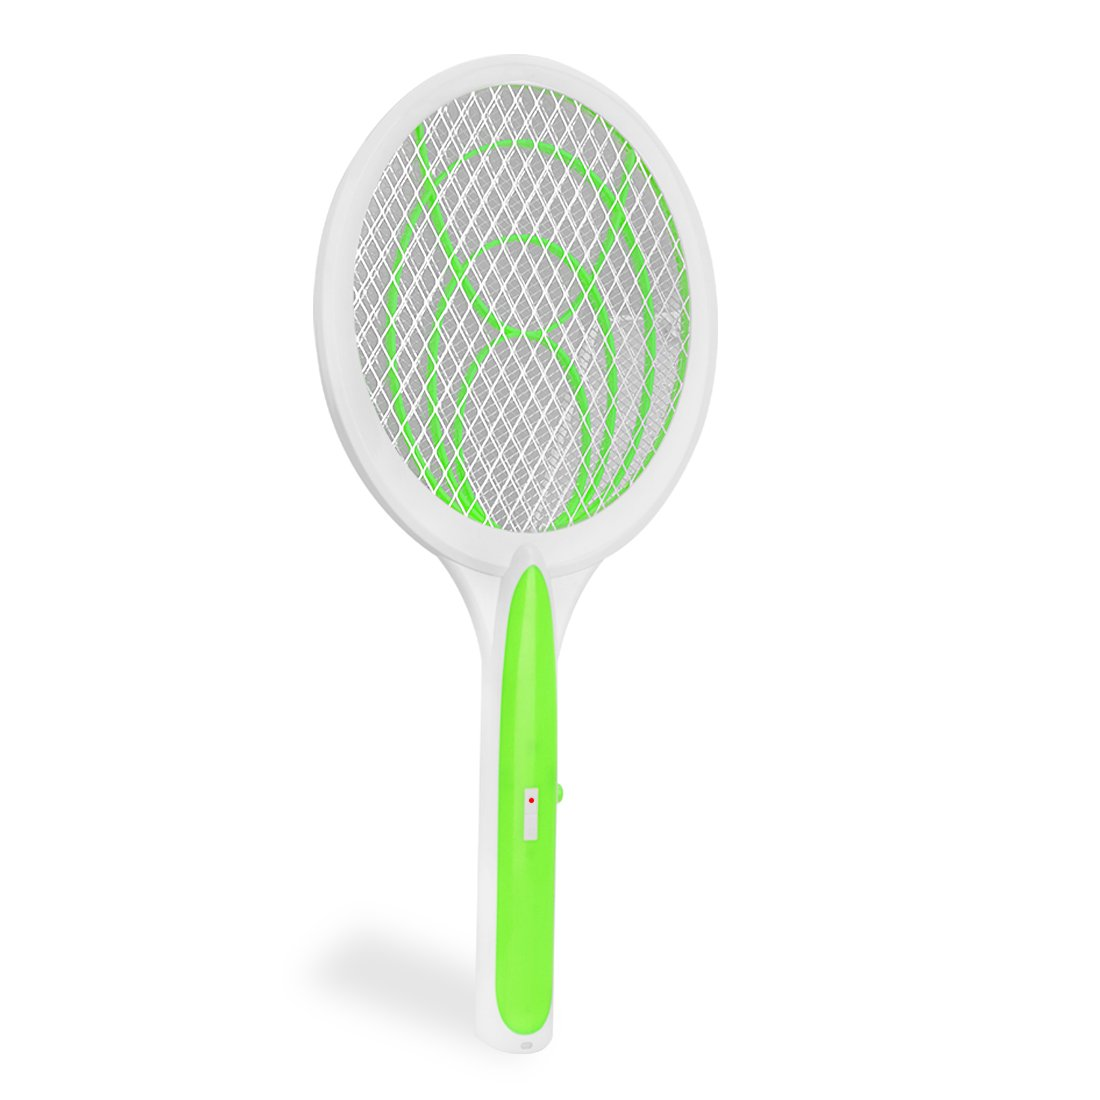 Handheld Best Electric Bug Zapper Racket Mosquito Fly Swatter Unique 3 Layer Safety Mesh for Summer Indoor and Outdoor, Large Zap Pest and Insect Control Heavy Duty Hotder